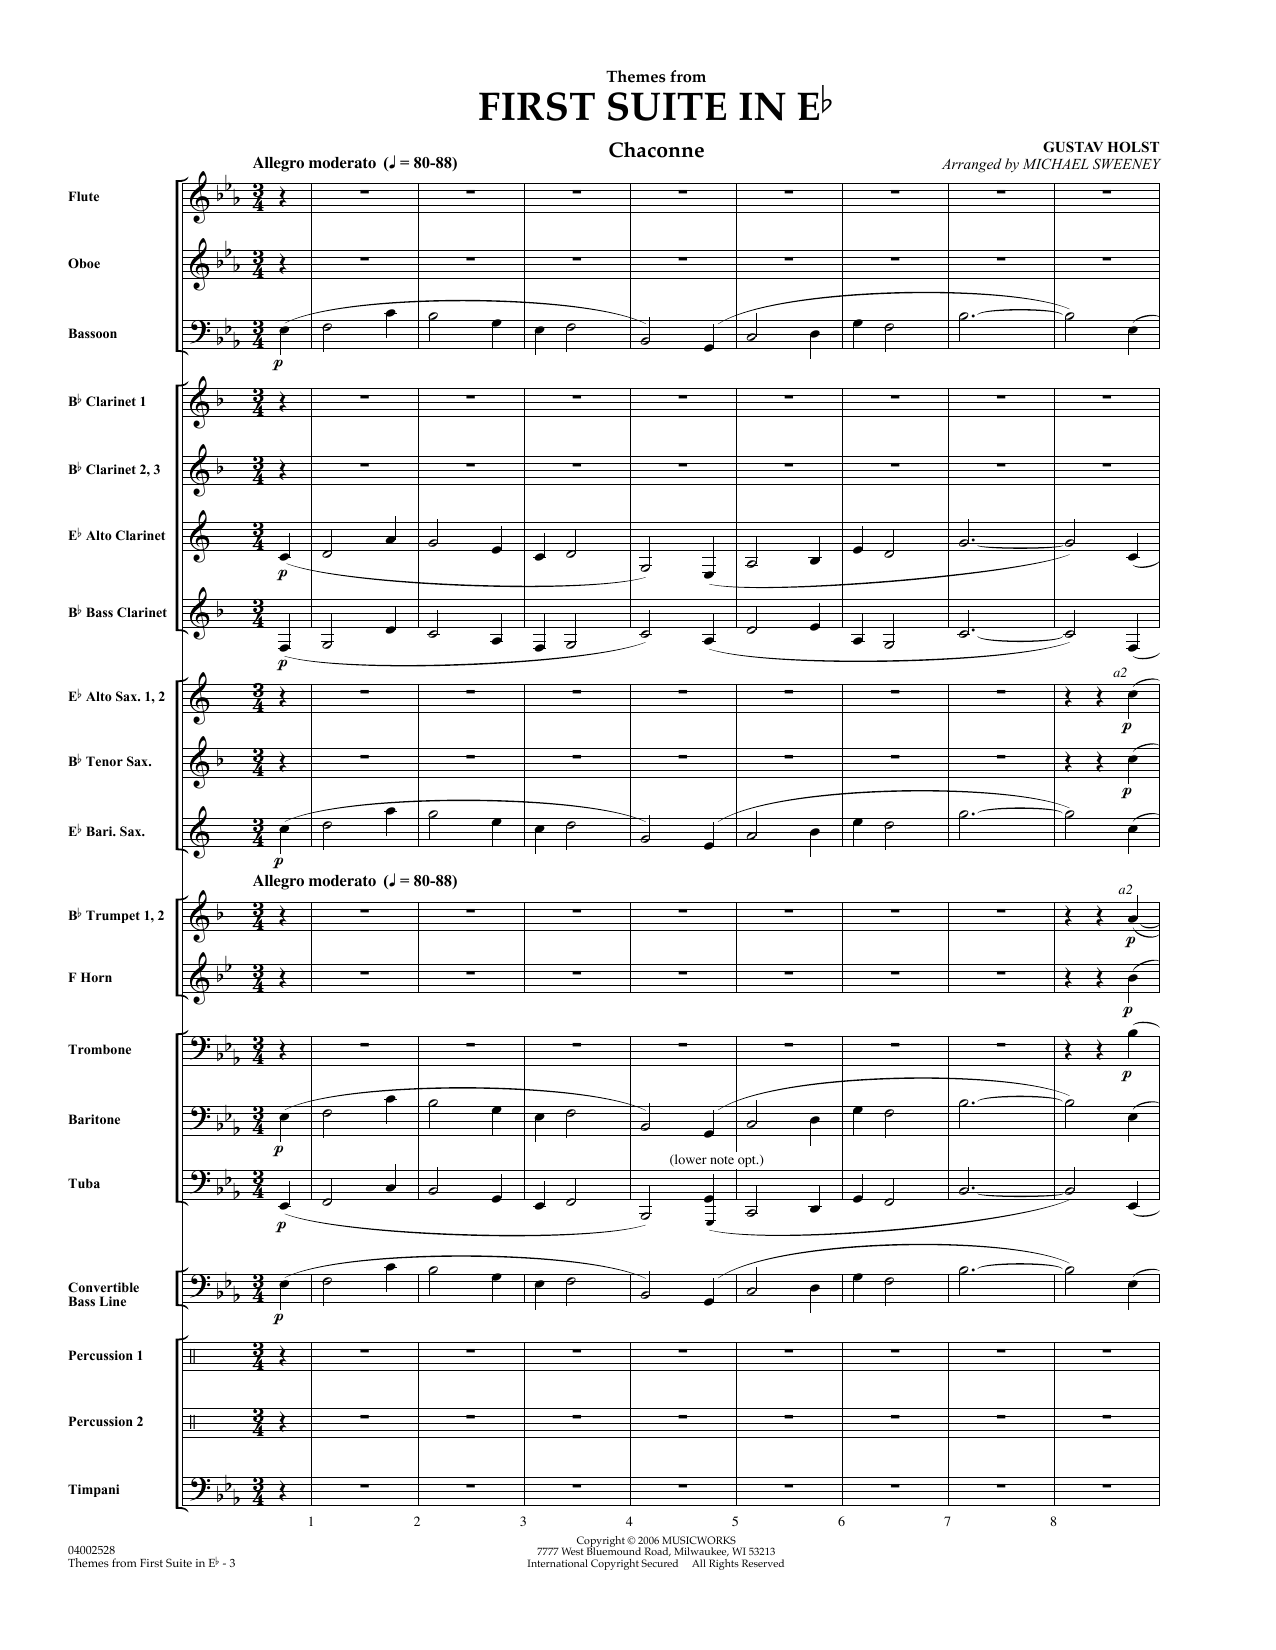 First Suite In E Flat, Themes From (COMPLETE) sheet music for concert band by Gustav Holst